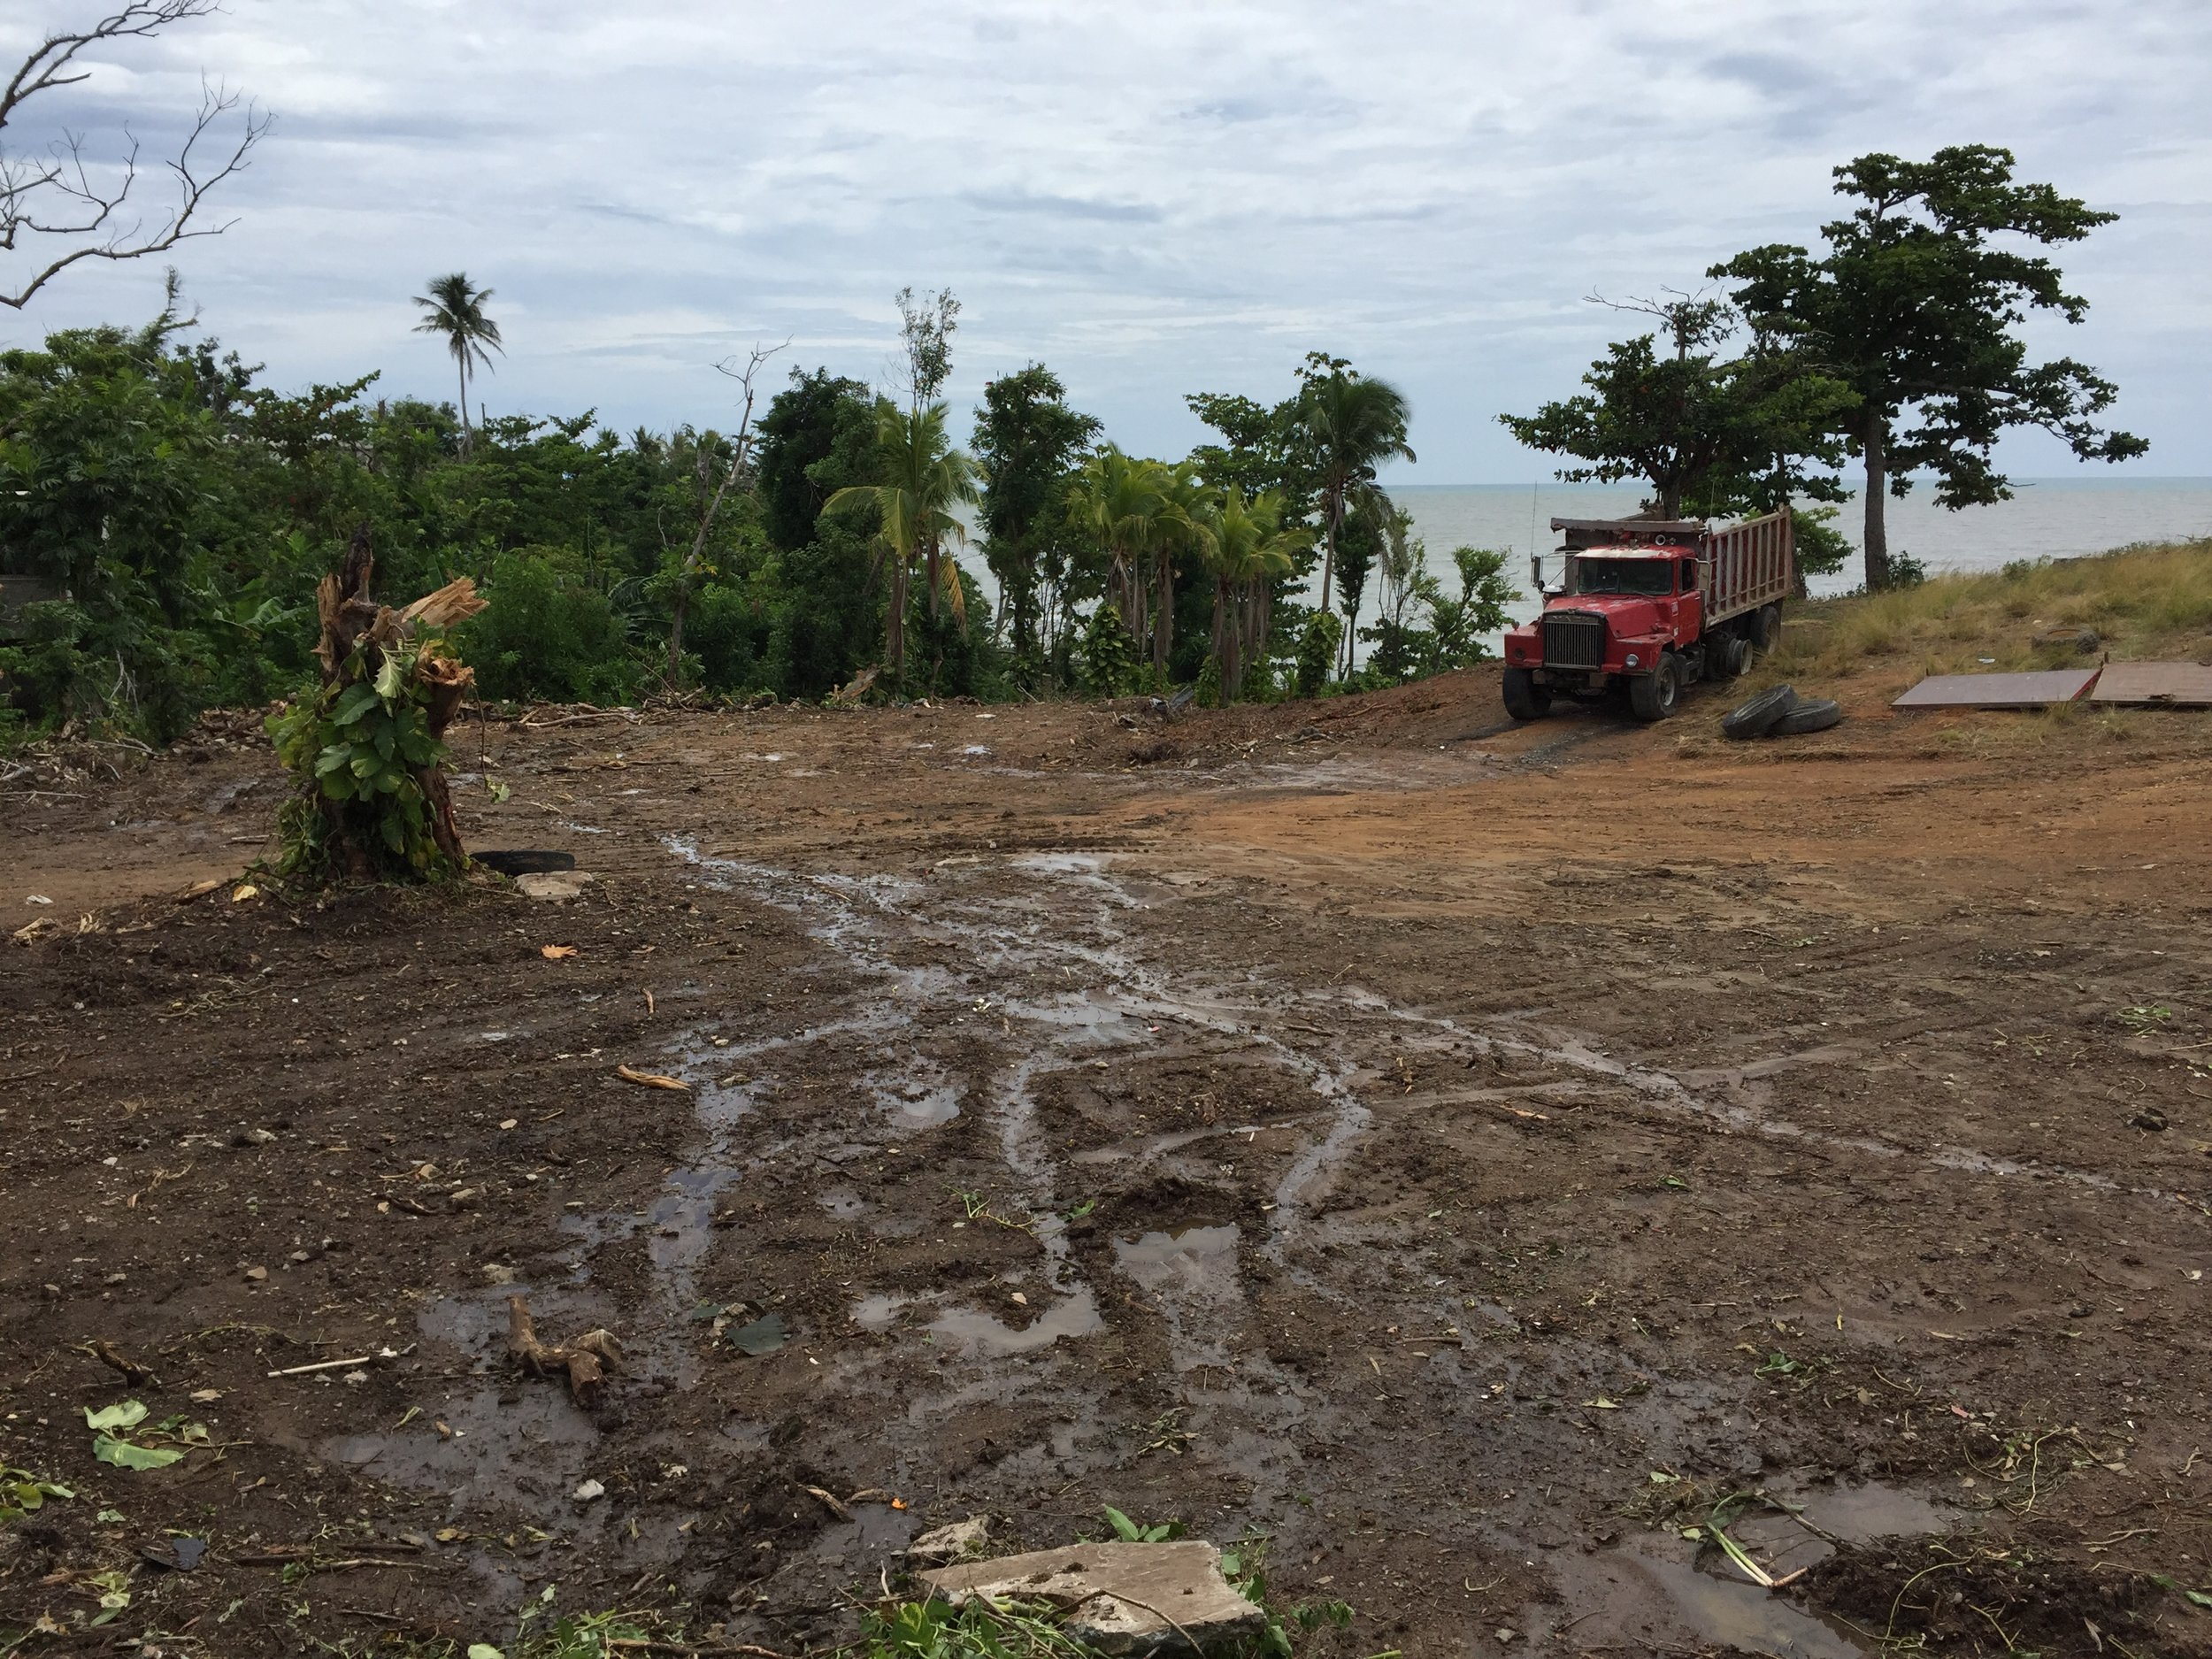 Naguabo, Puerto Rico - A developer destroyed the natural habitat and turned a healthy watershed into mud where nothing could live